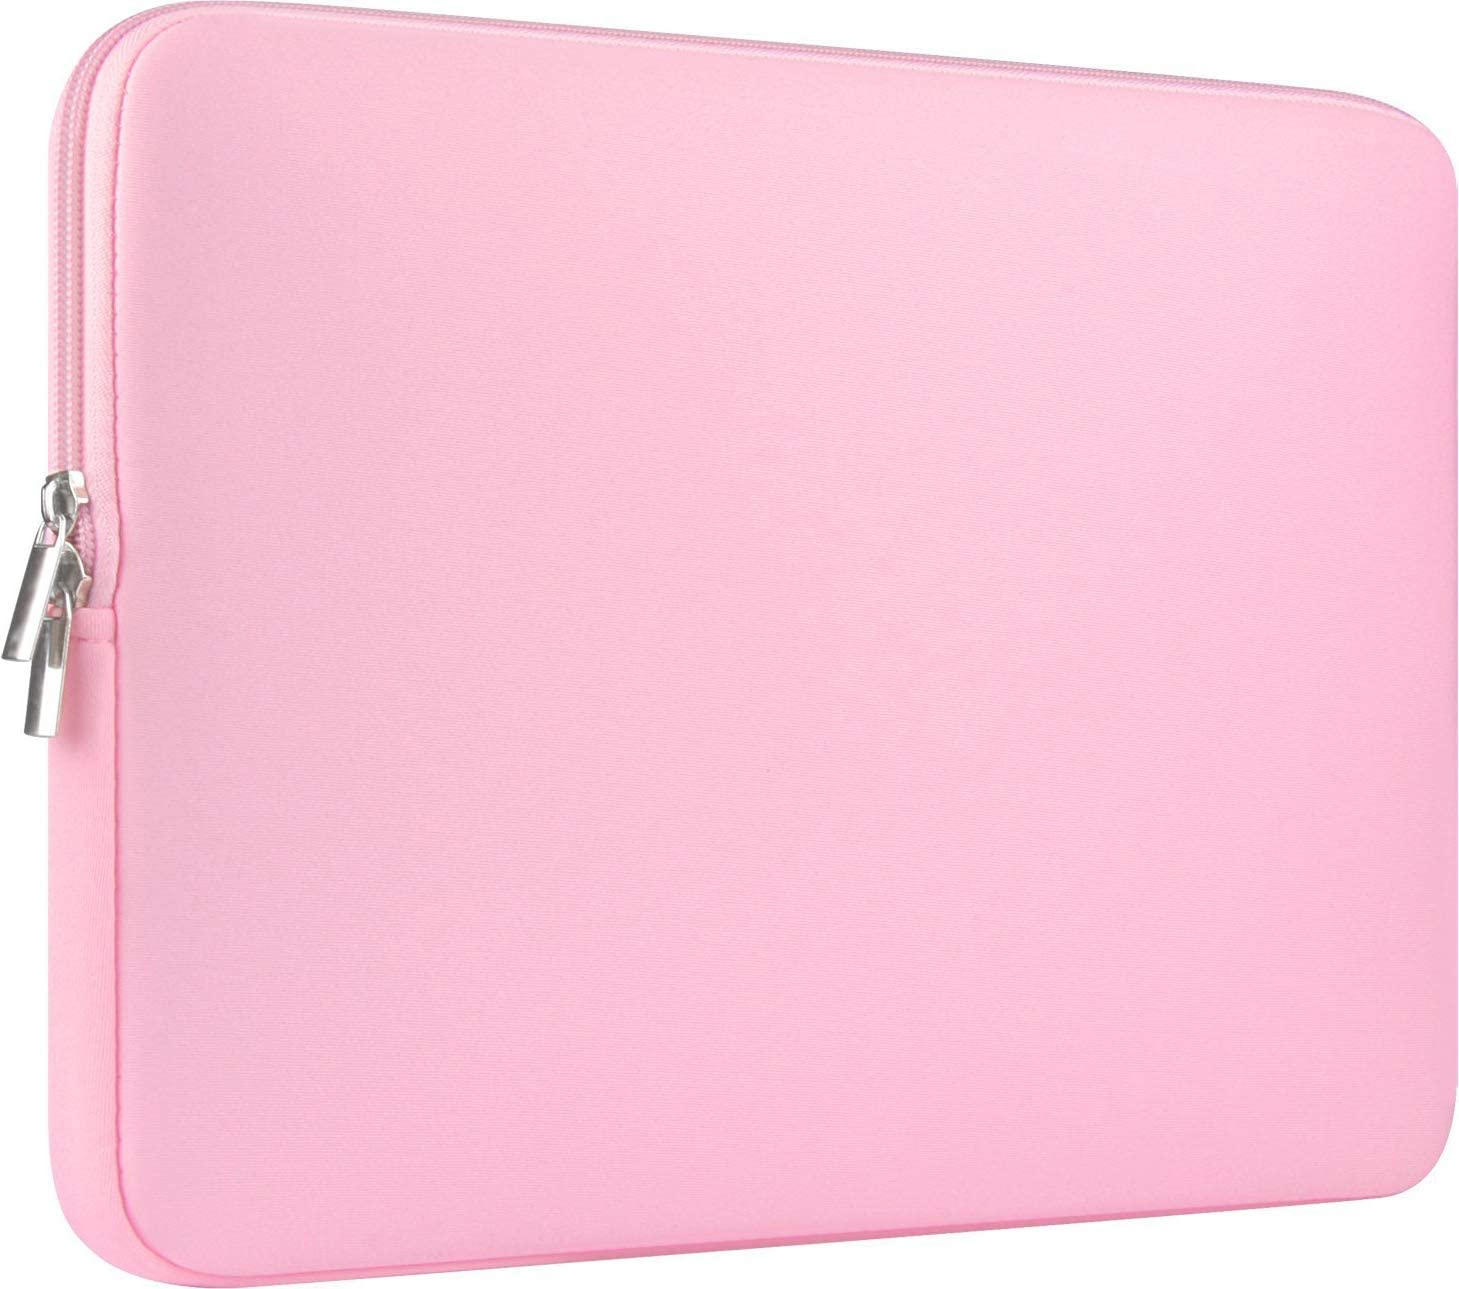 "CCPK 13 Inch Laptop Sleeve 13.3 Inch Computer Bag 13.3-inch Netbook Sleeves 12.9 in Tablet Carrying Case Cover Bags 13"" Notebook Skin Neoprene, Pink"